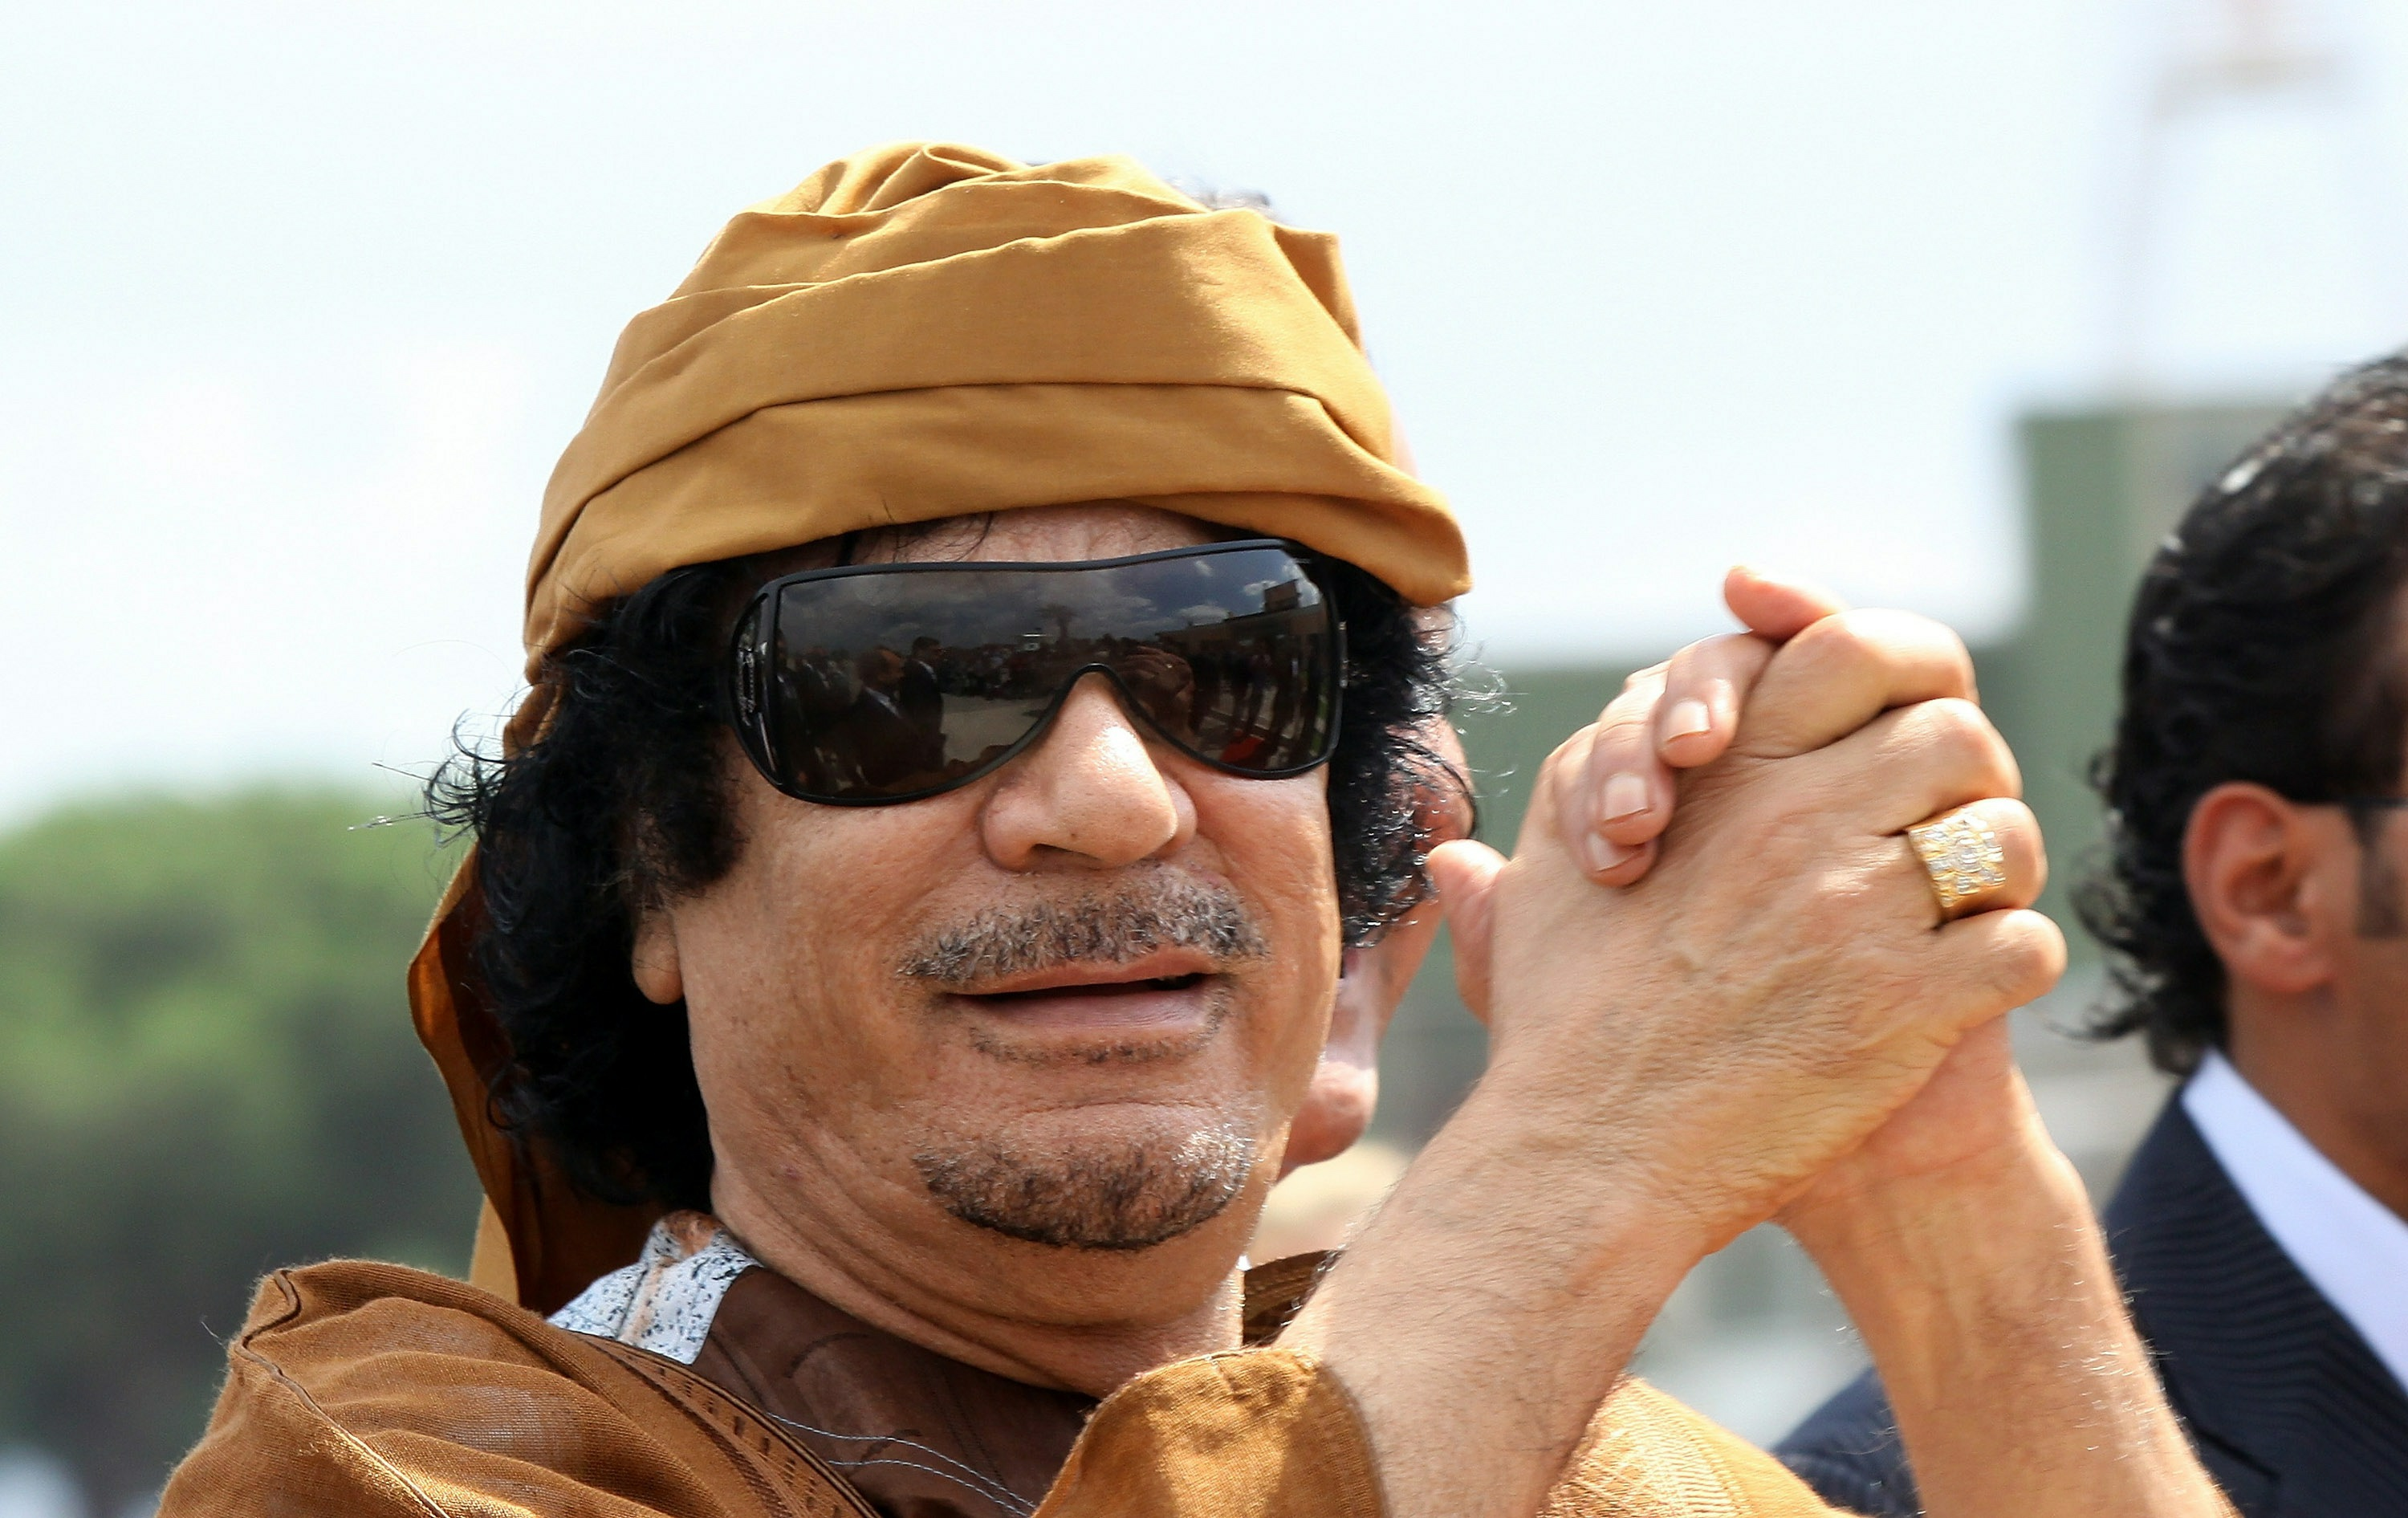 U.S. officials: Gadhafi could be planning a 'last stand'